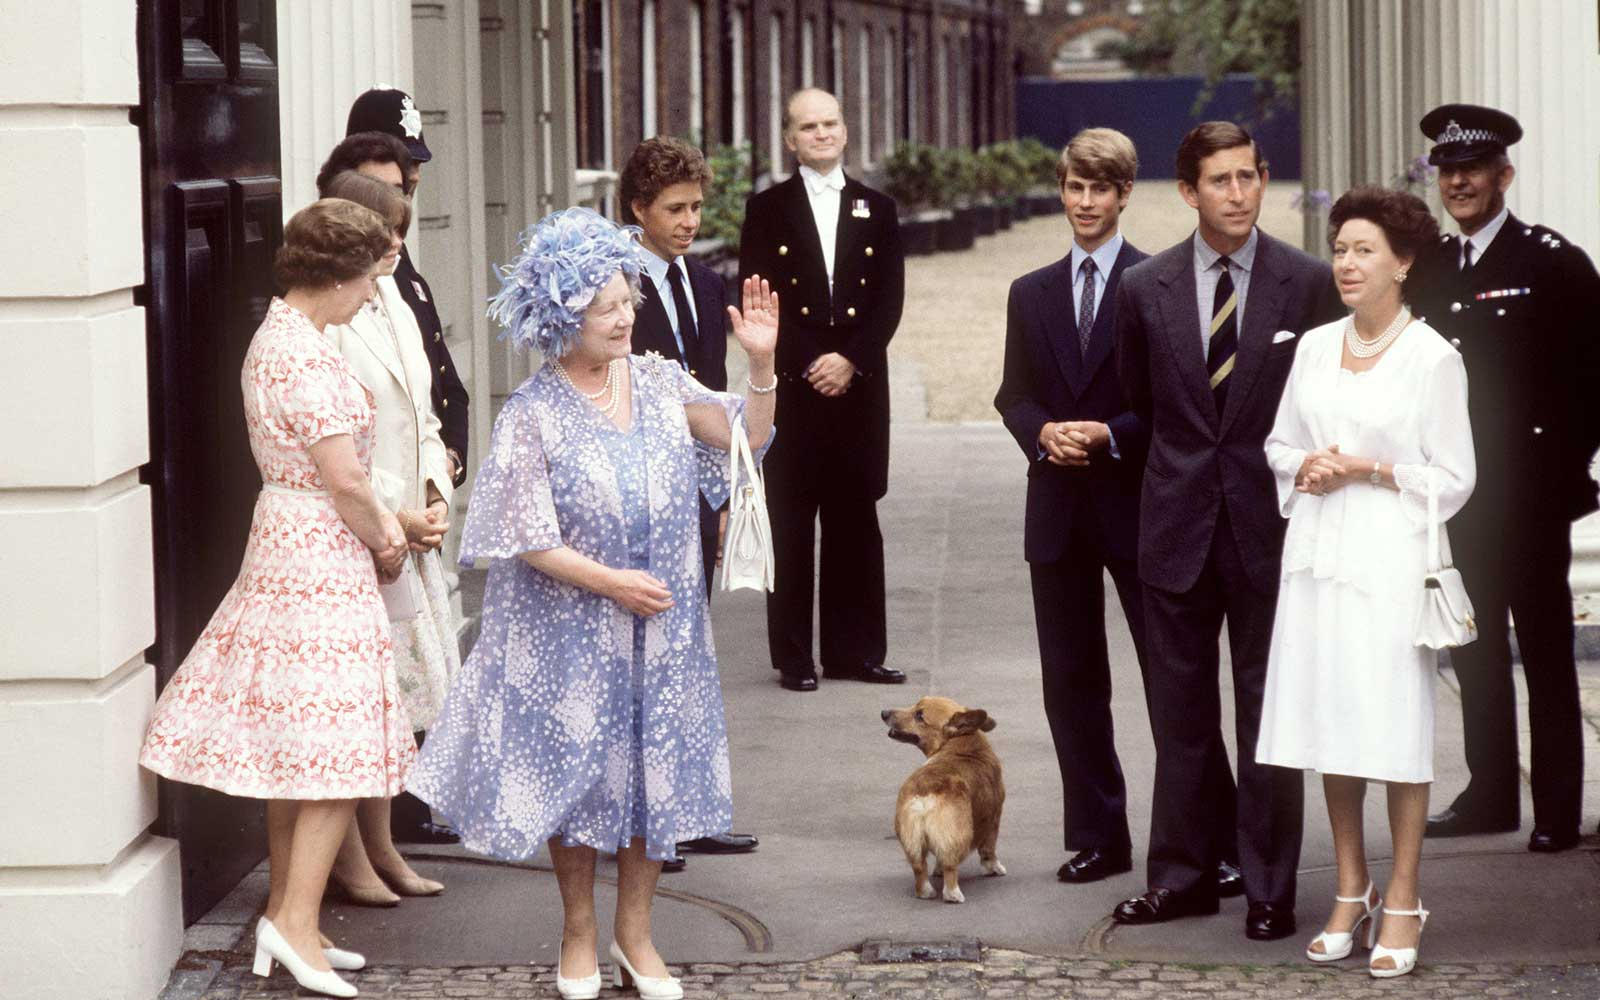 Queen Elizabeth II and her Corgis